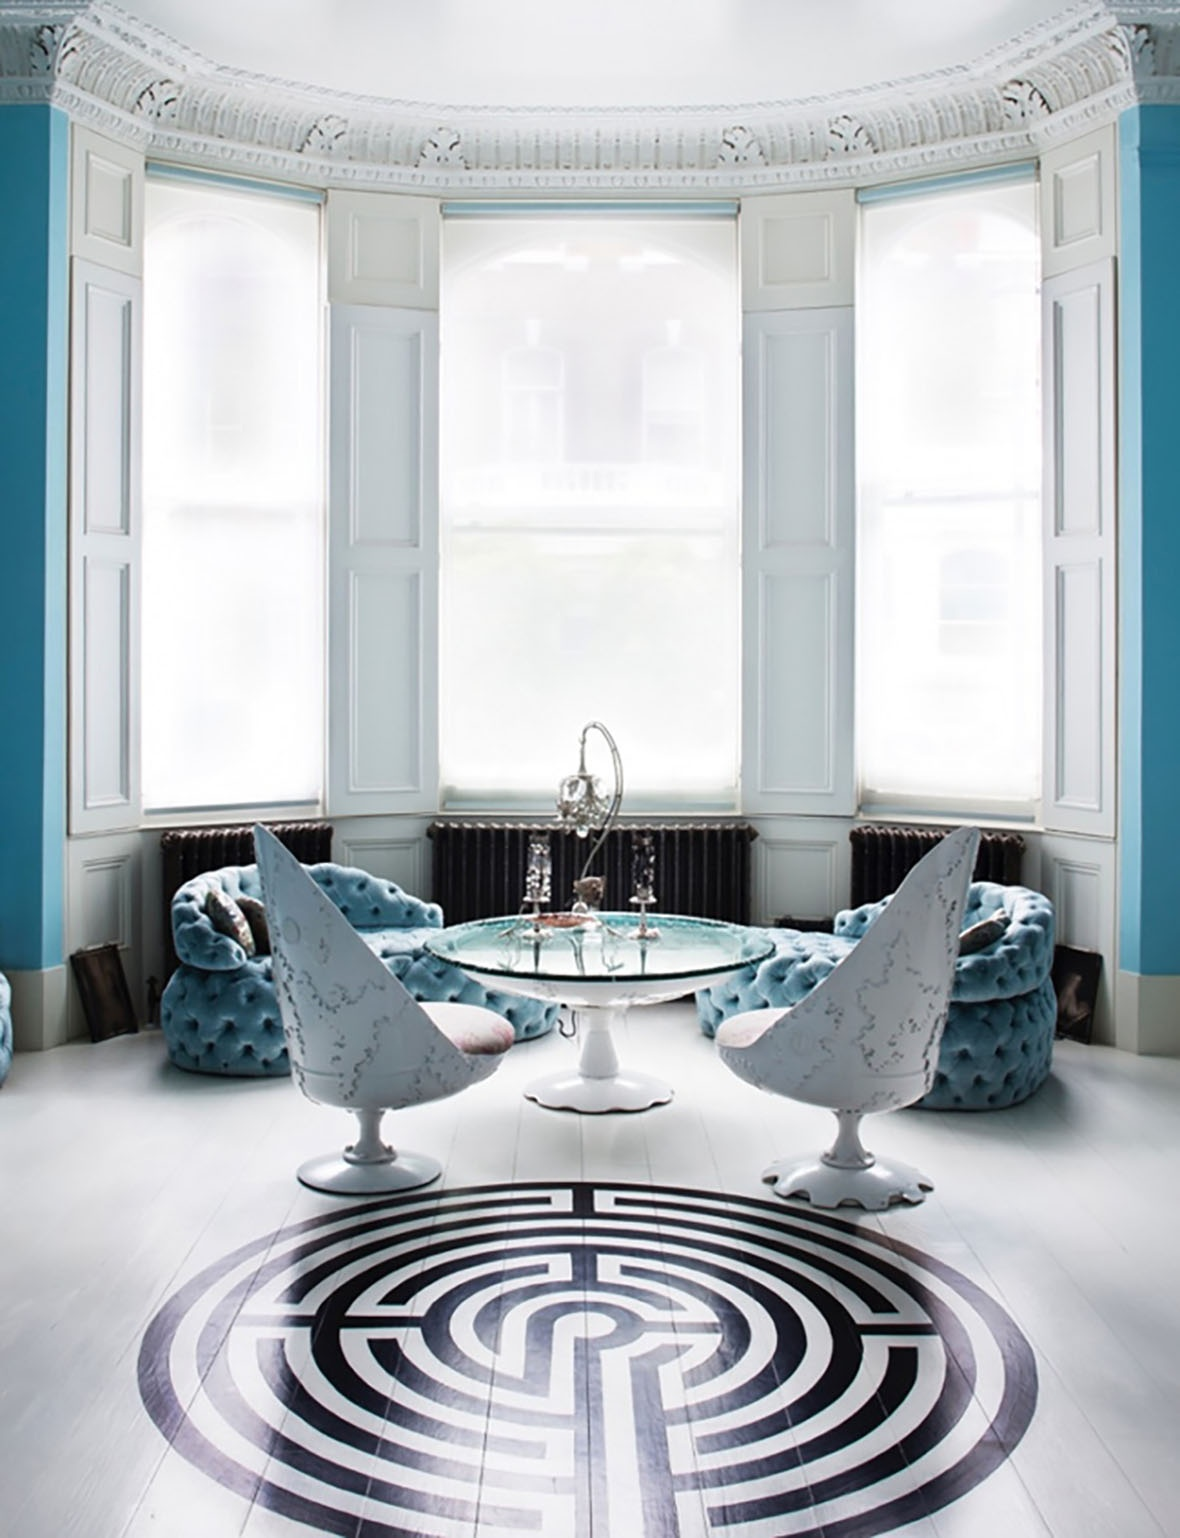 04-matching-blue-chairs-are-placed-by-the-large-windows-and-theres-a-cool-geo-pattern-on-the-floor